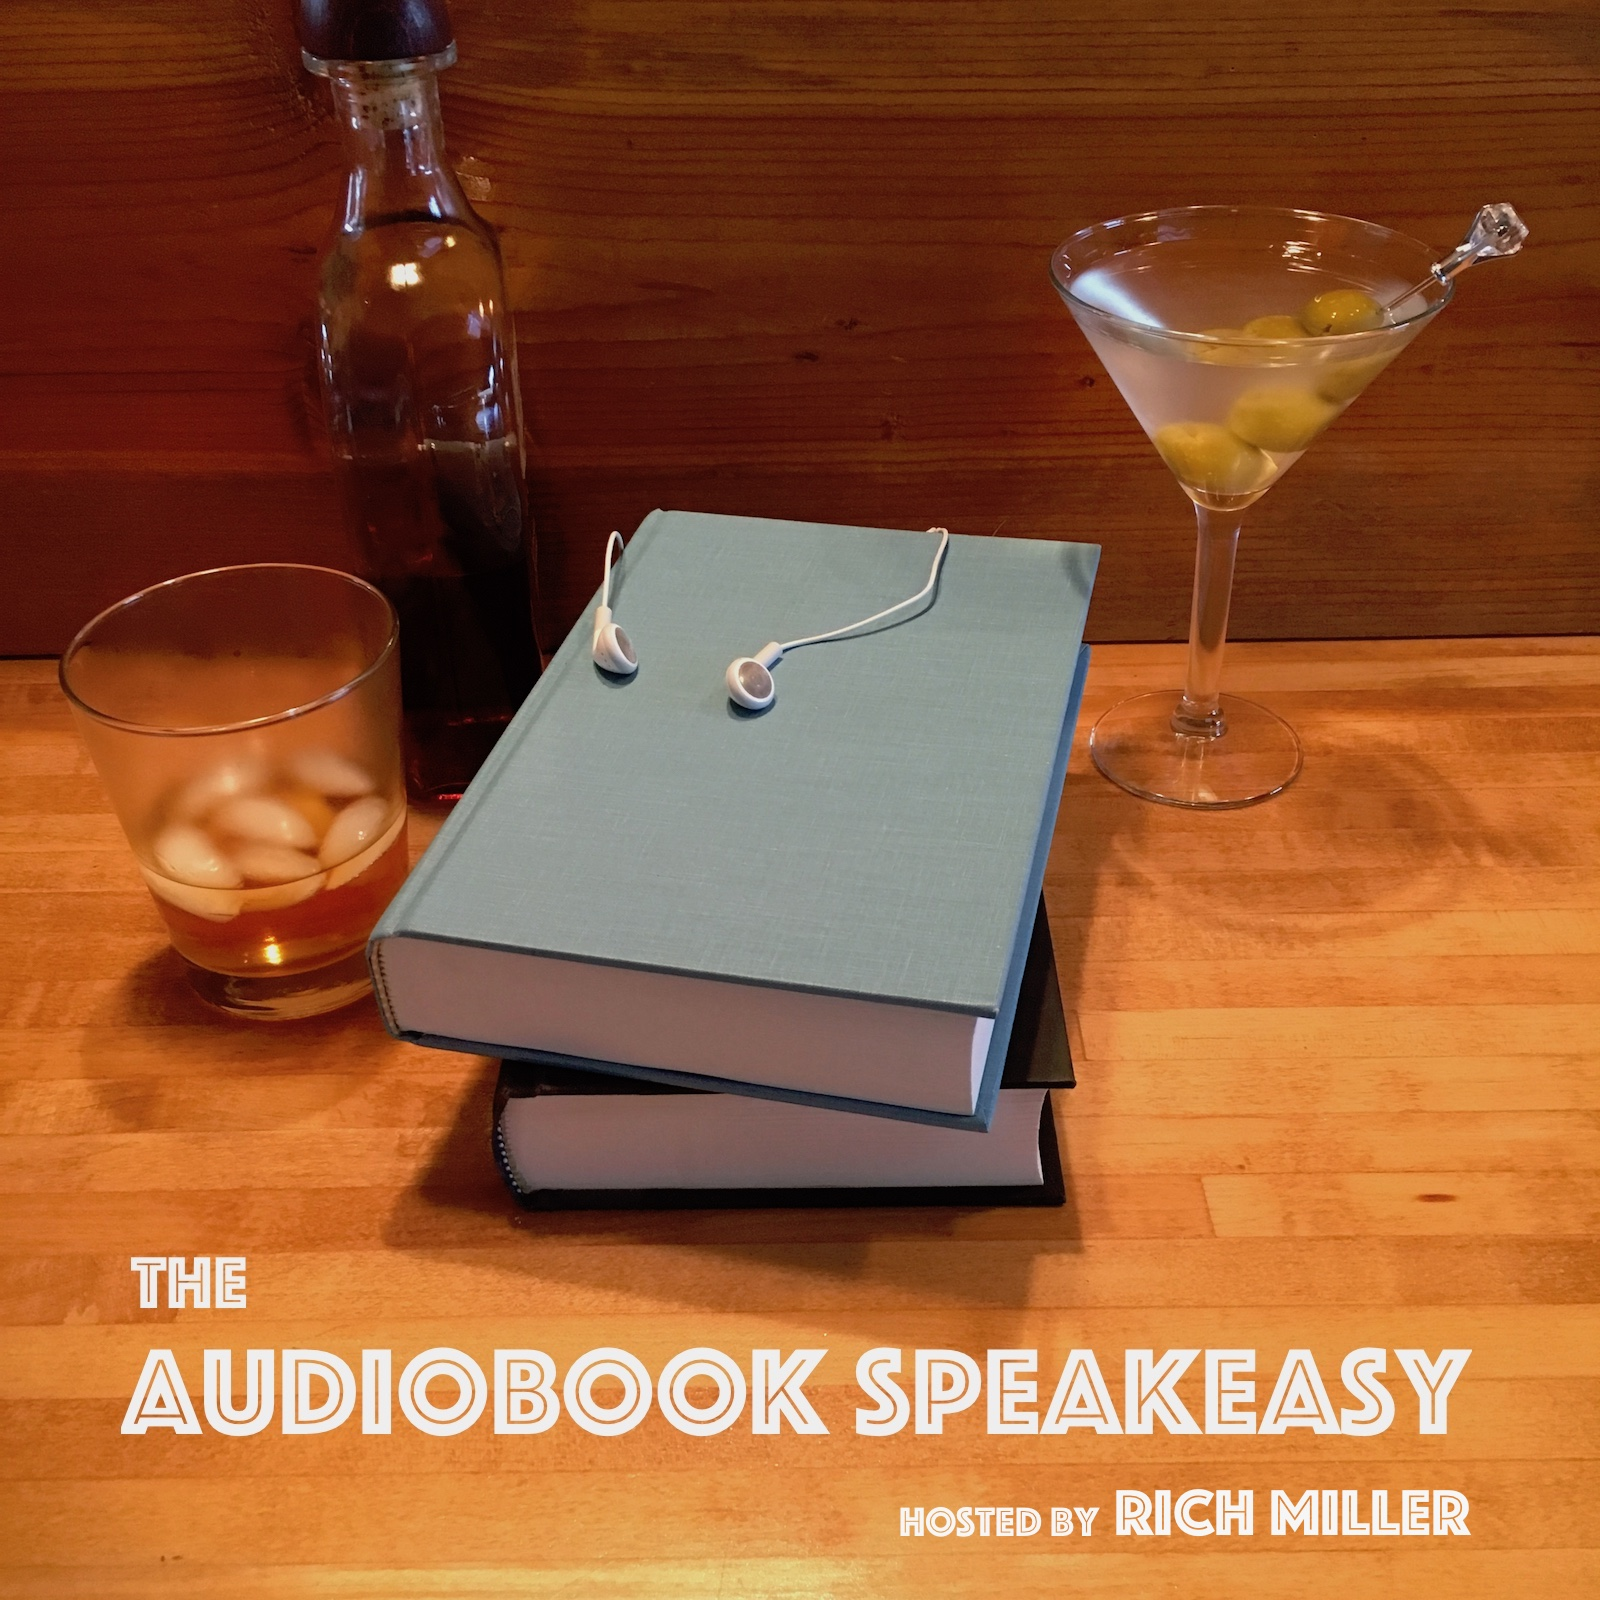 Audiobook_Speakeasy_cover_2.jpg